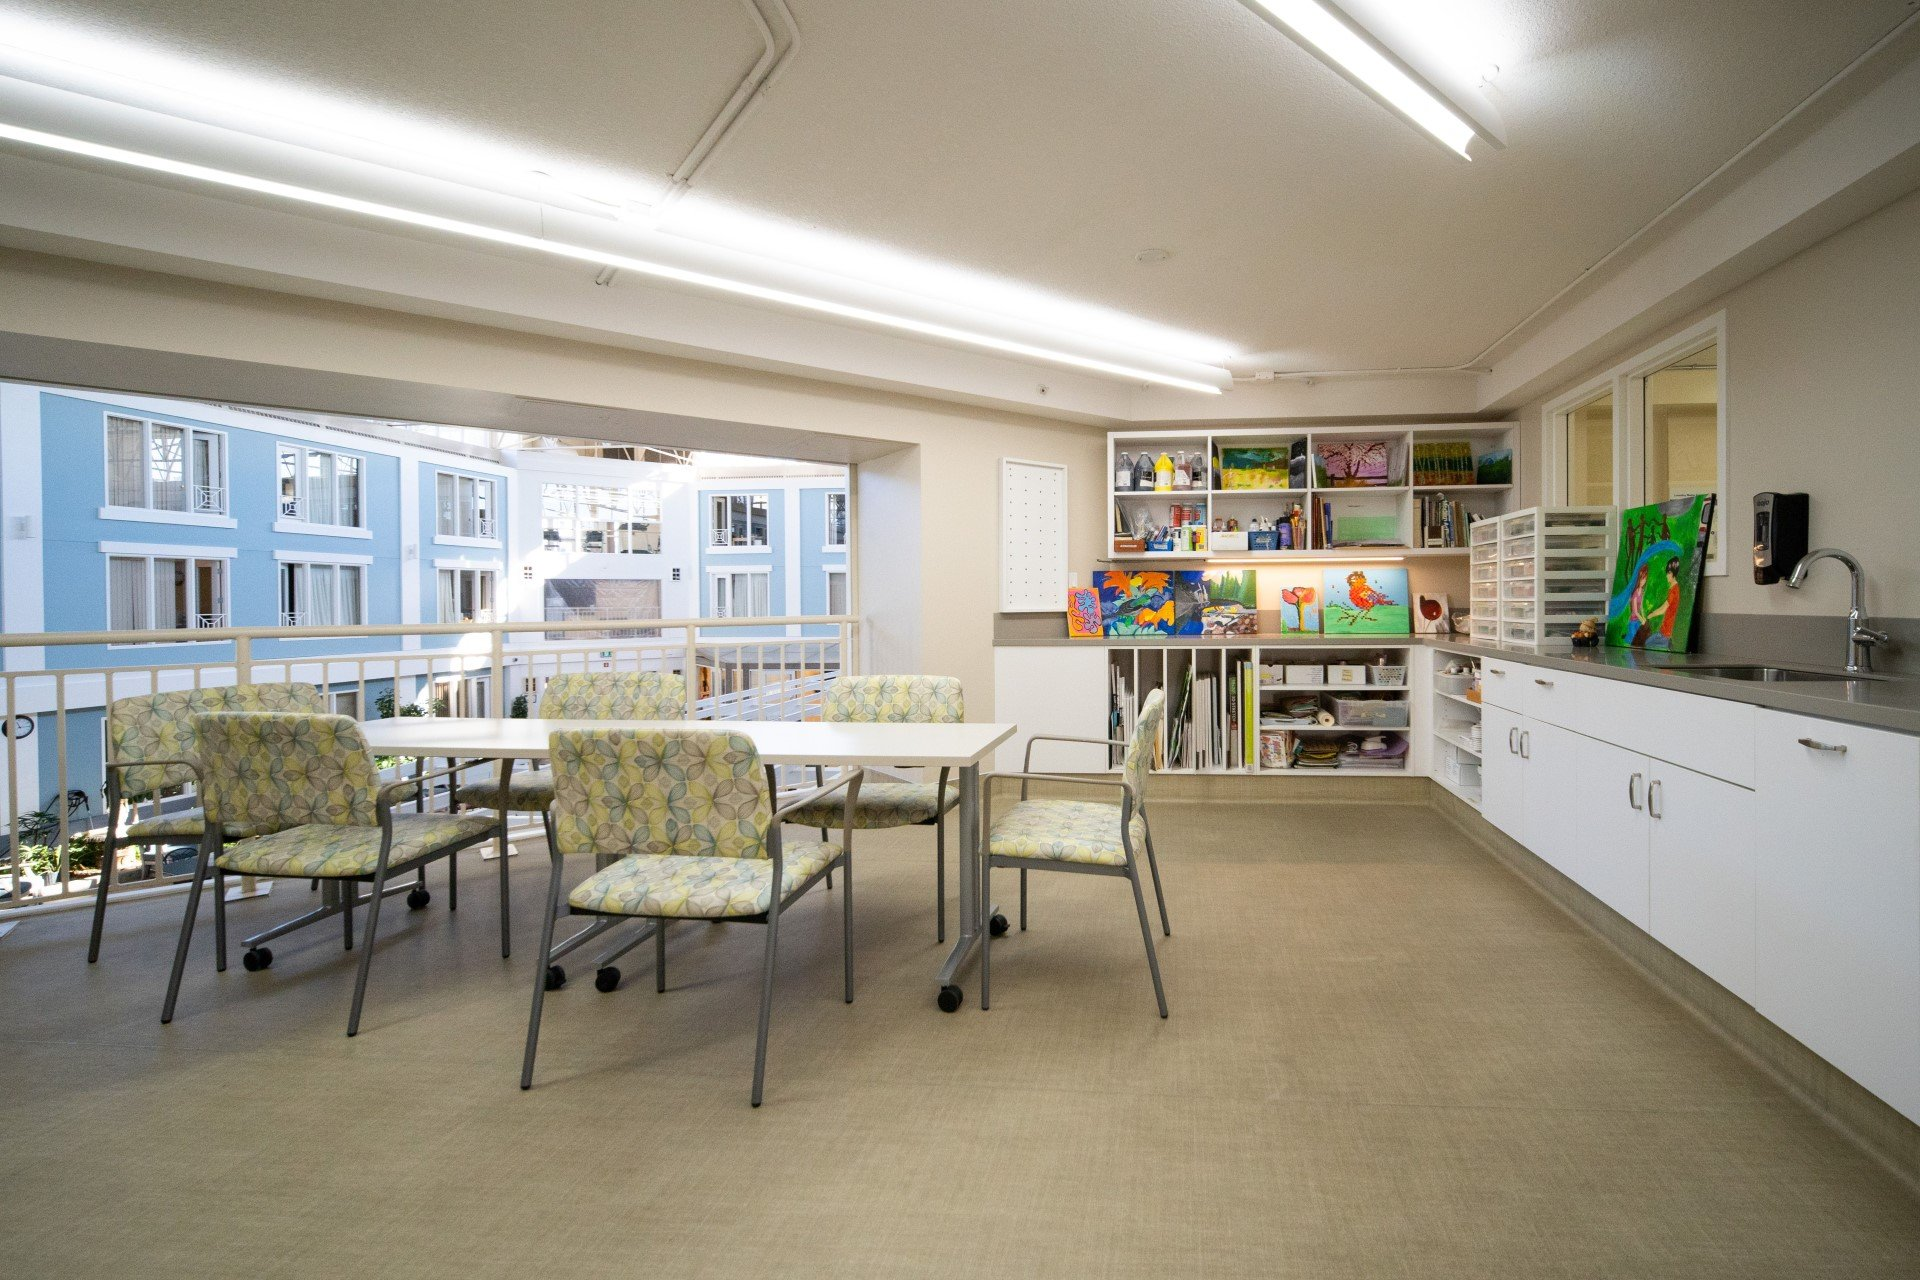 Arts and crafts room at Spruce community